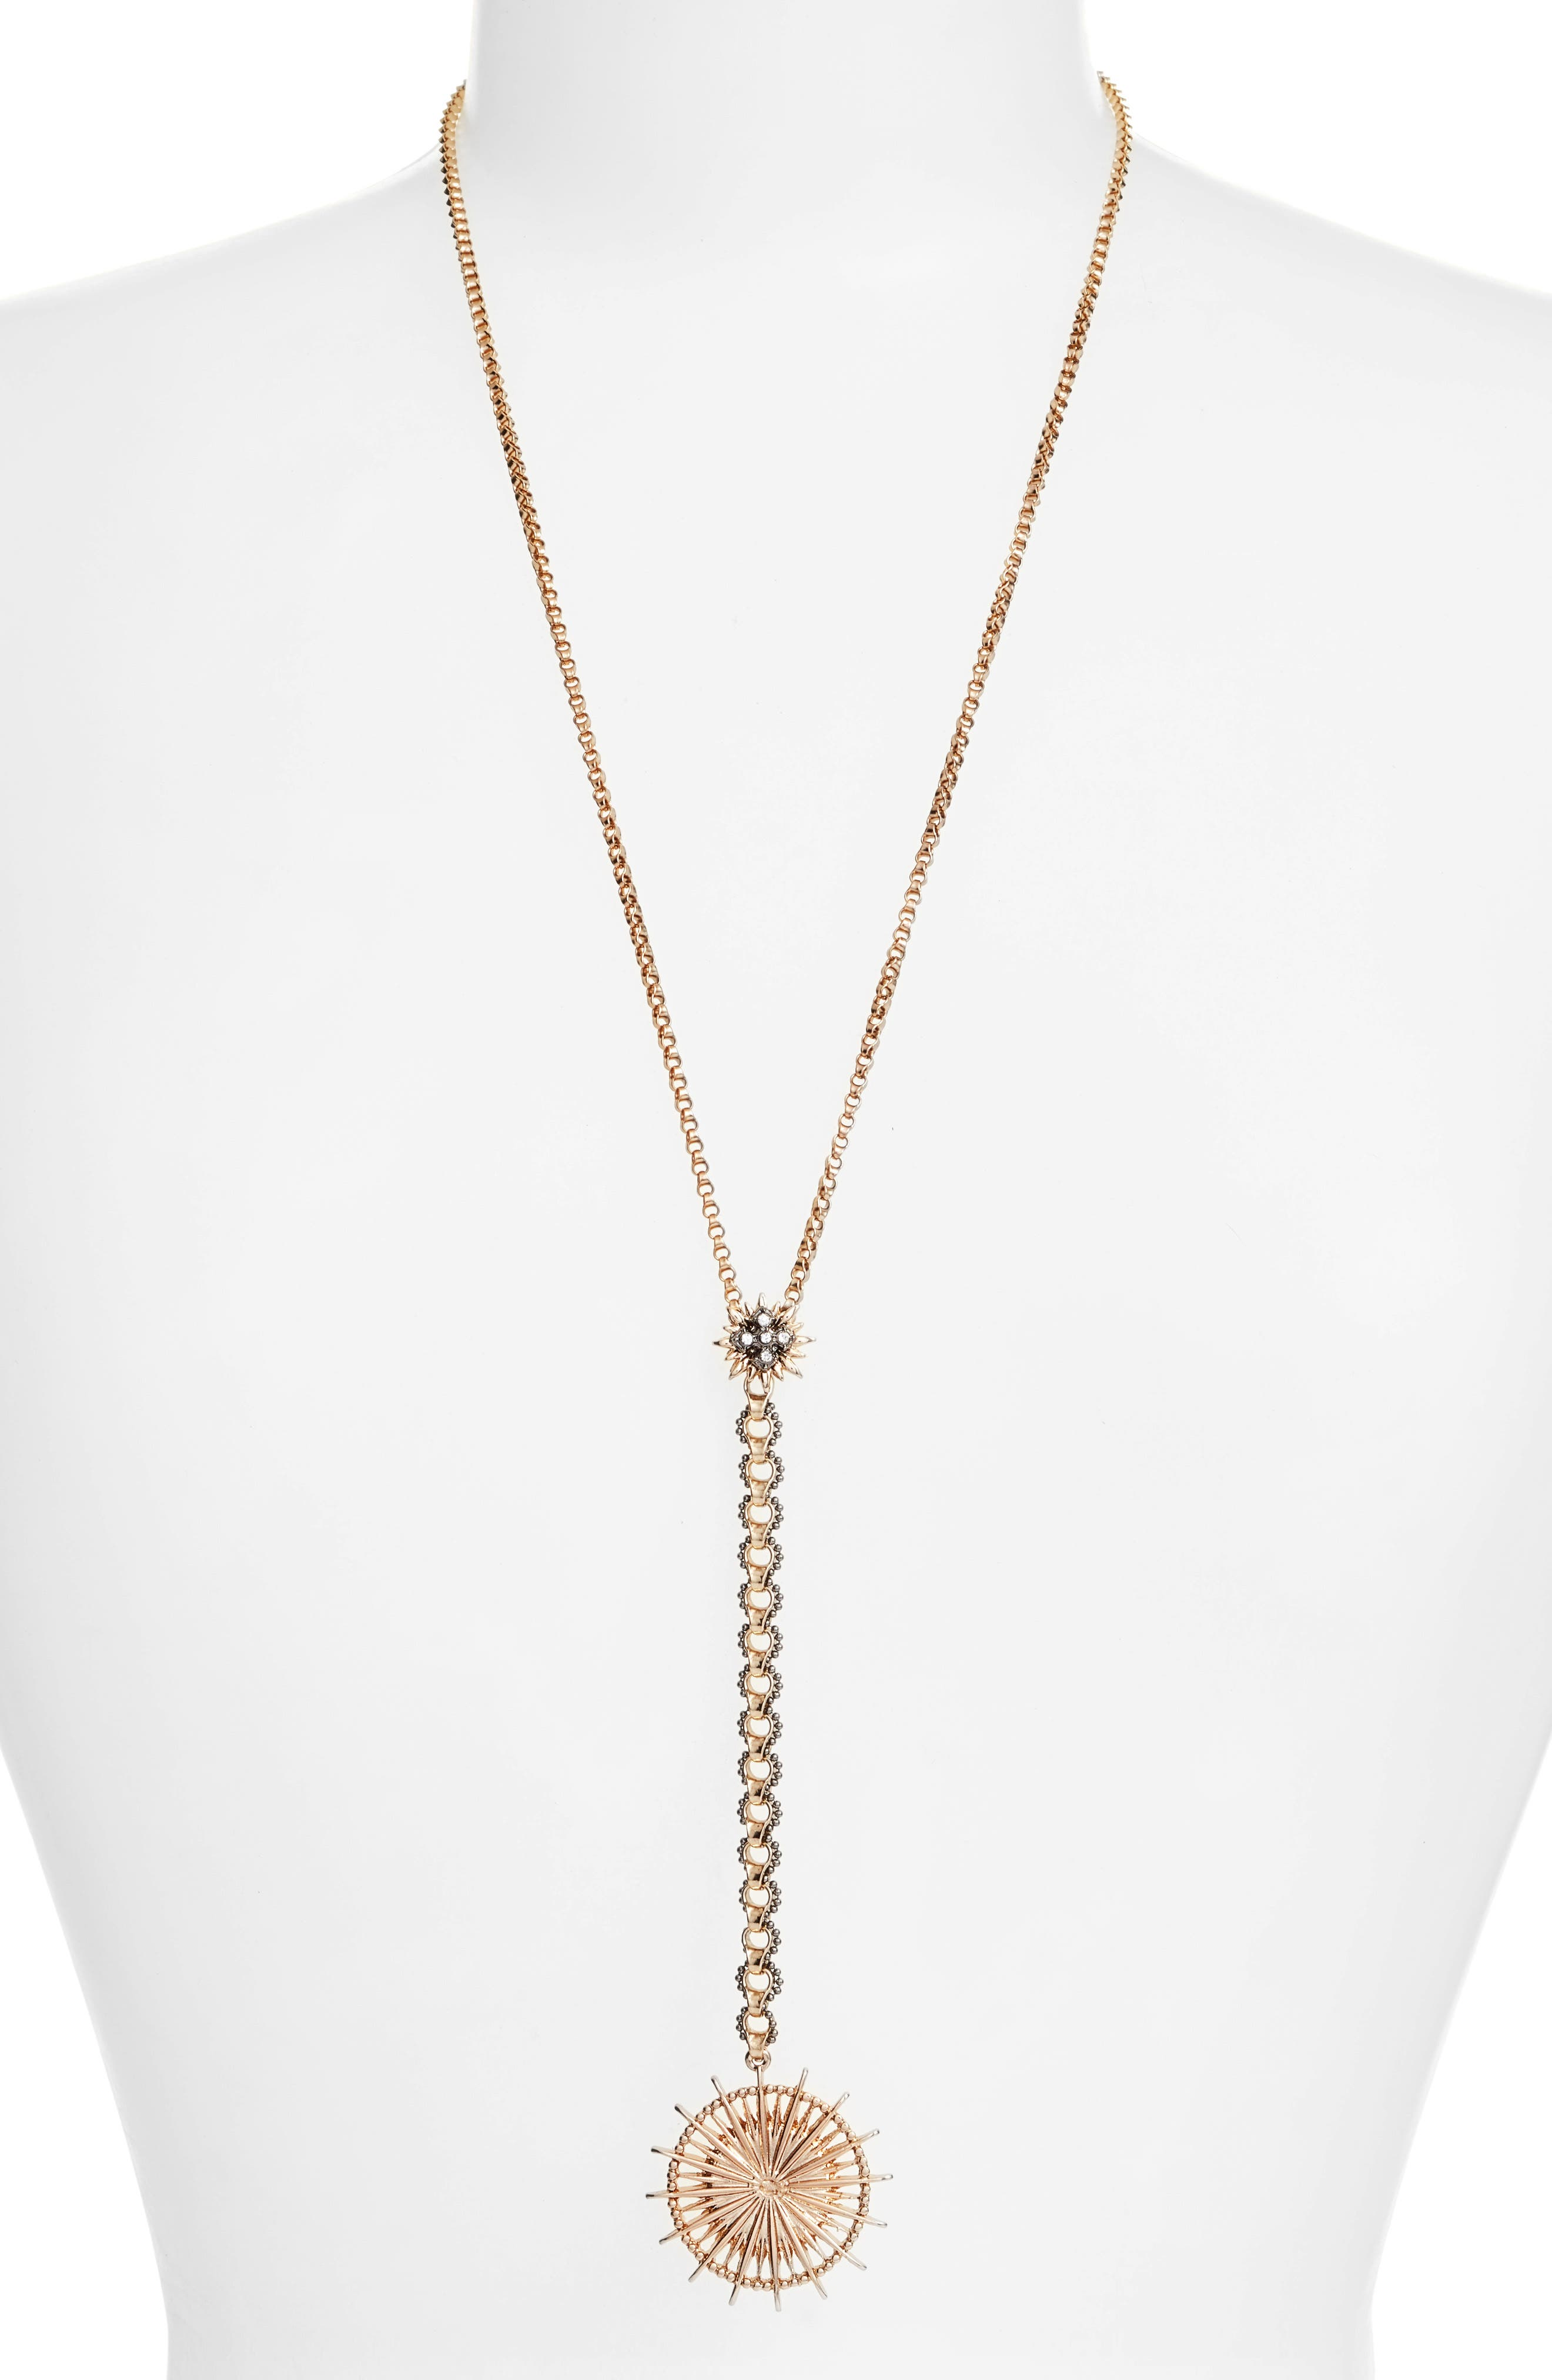 Jenny Packham Light Up the Night Y-Necklace